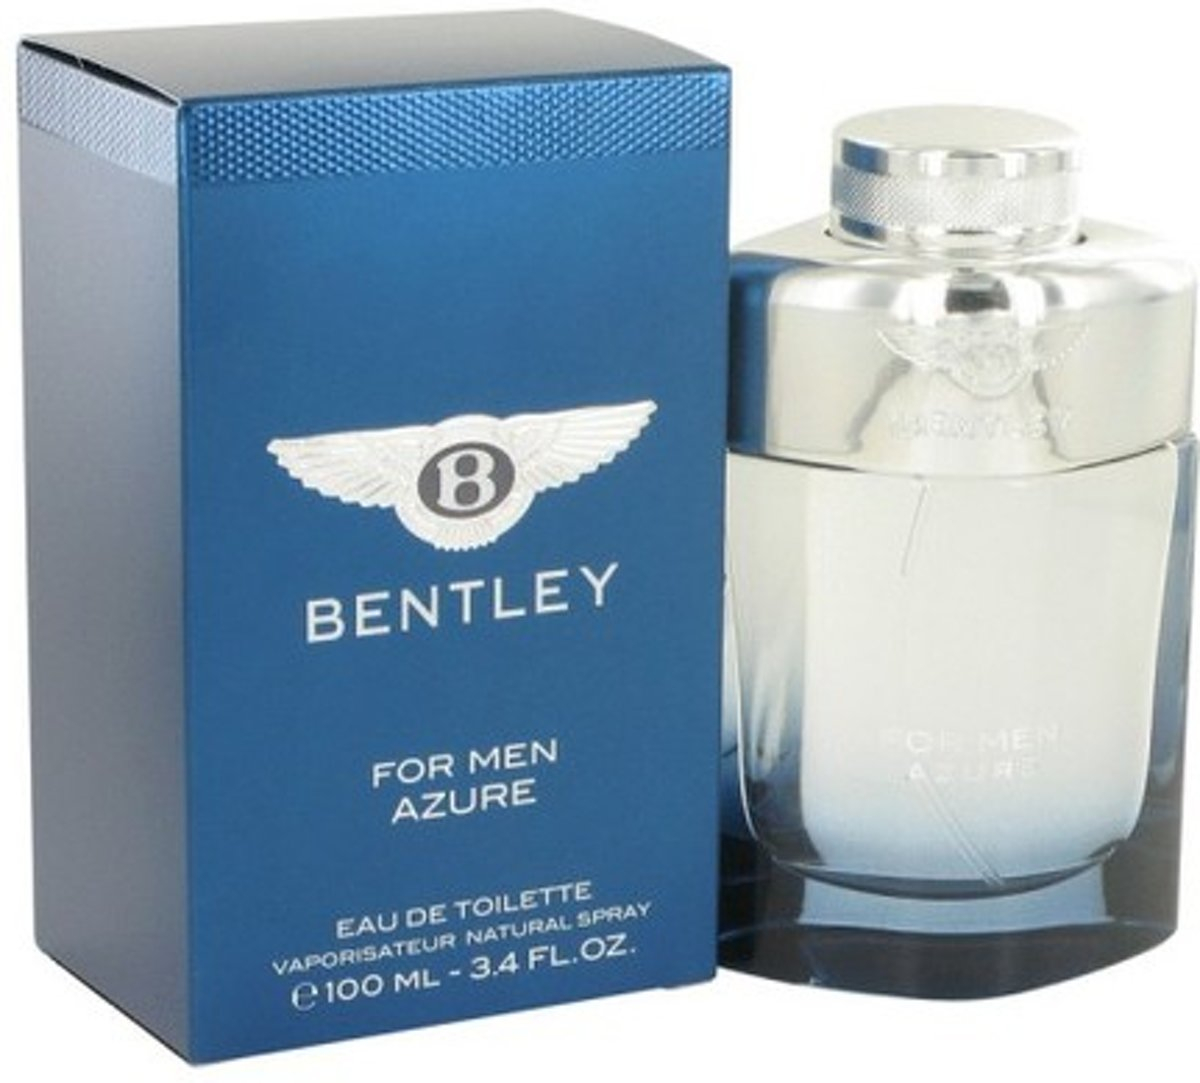 Bentley Eau De Toilette 60 ml - Voor Mannen